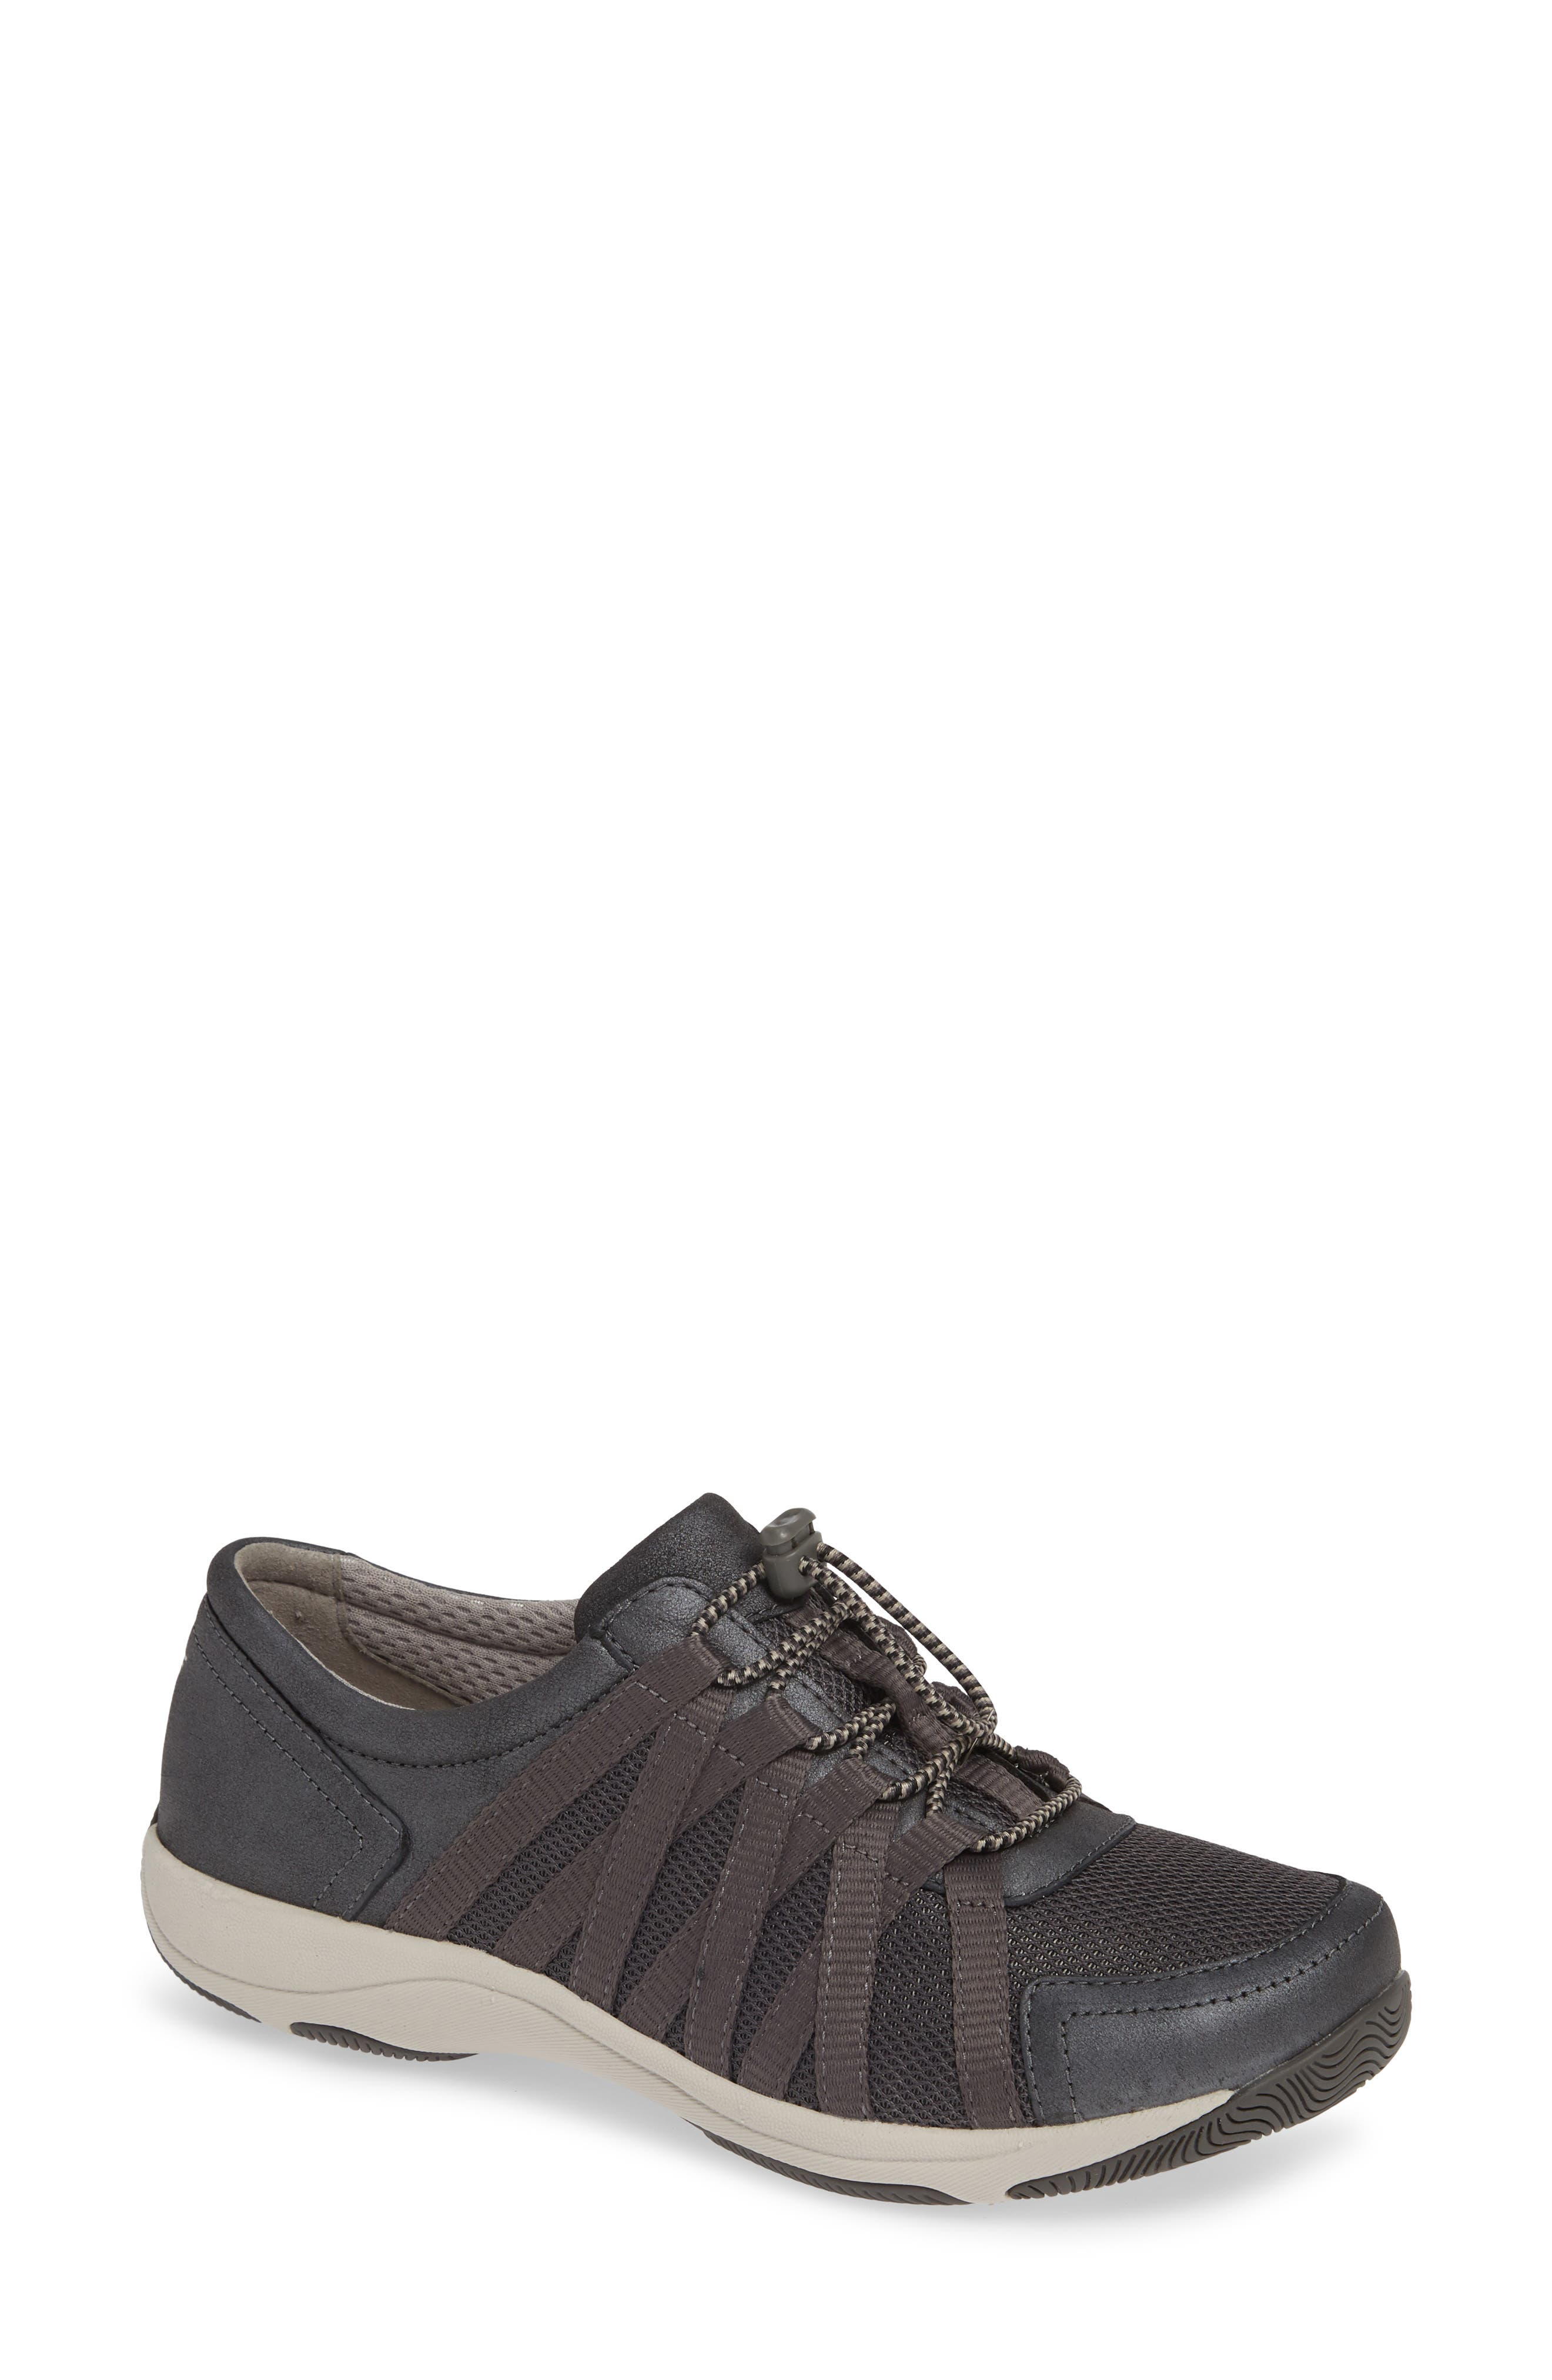 Halifax Collection Honor Sneaker,                         Main,                         color, CHARCOAL/ CHARCOAL SUEDE